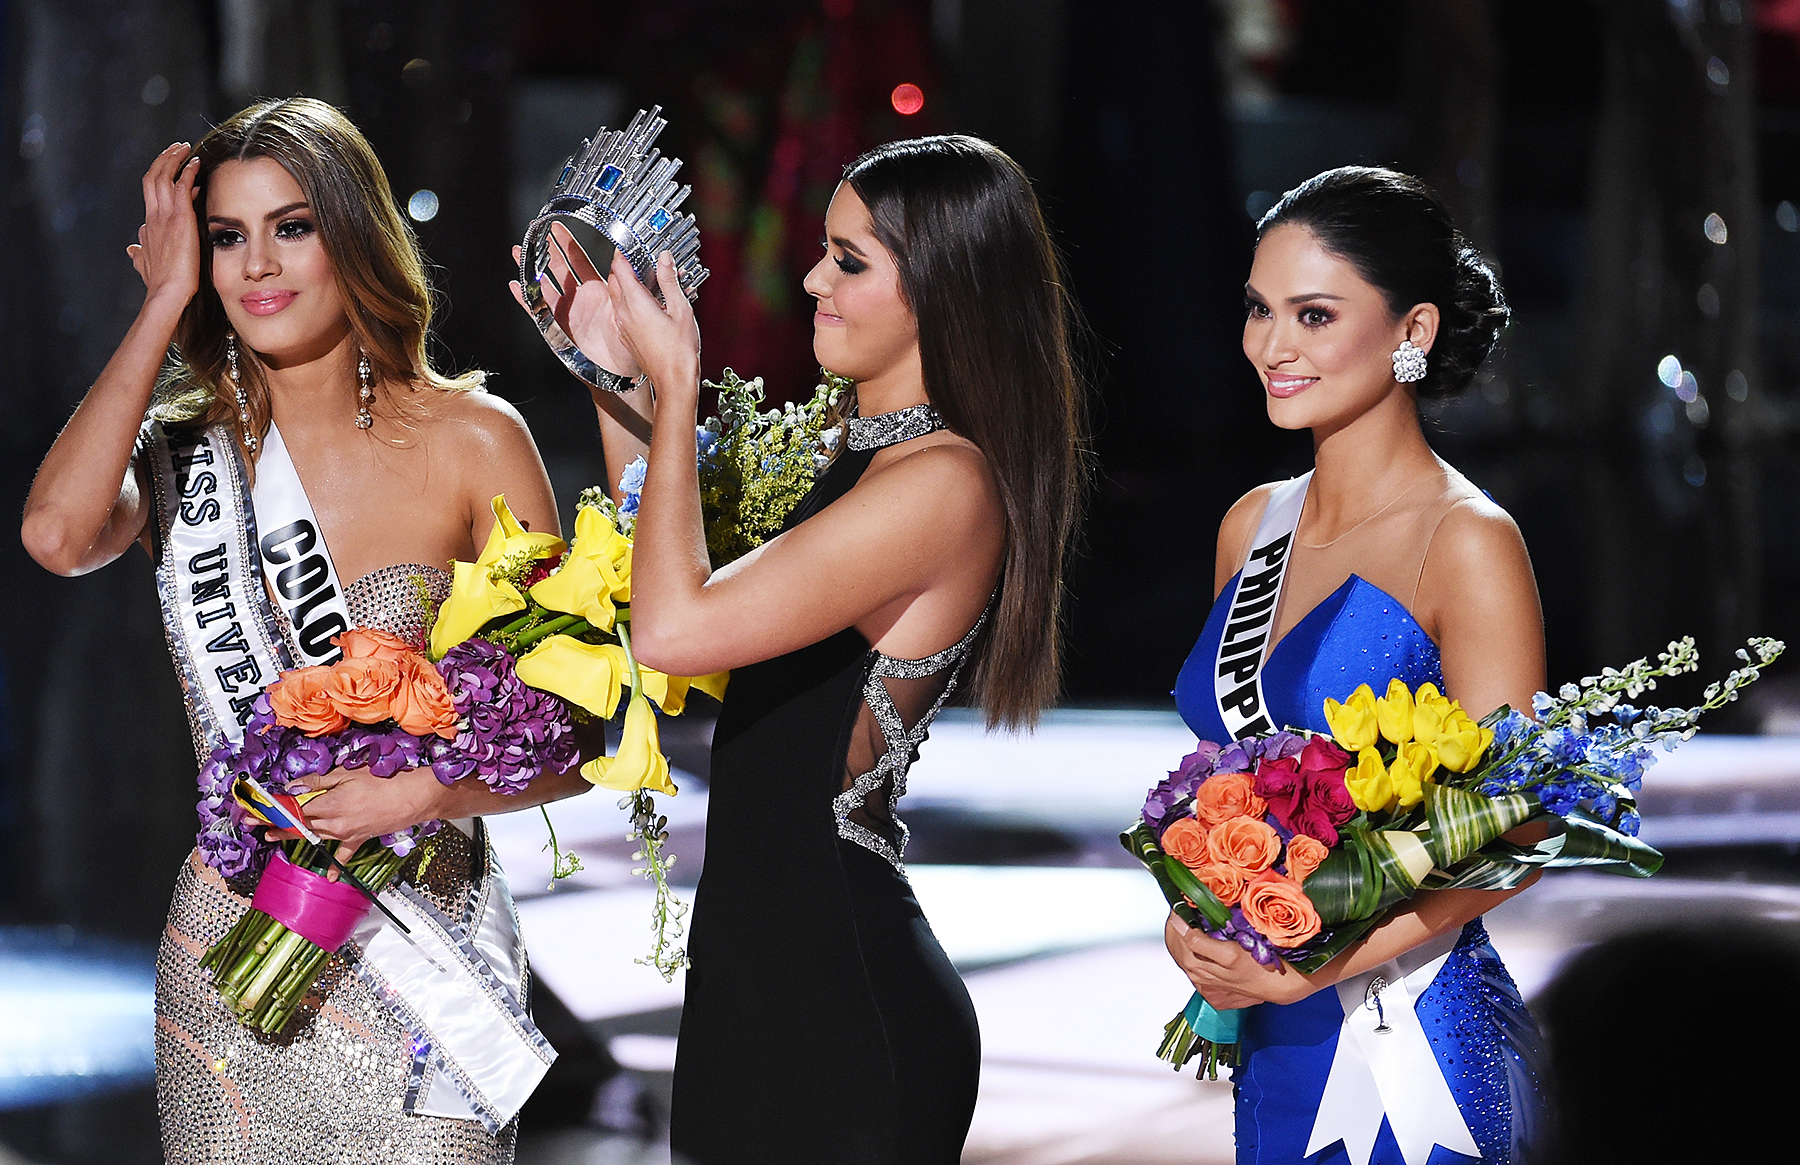 Miss Universe 2014 Paulina Vega (C) removes the crown from Miss Colombia 2015, Ariadna Gutierrez, in order to give it to Miss Philippines 2015, Pia Alonzo Wurtzbach